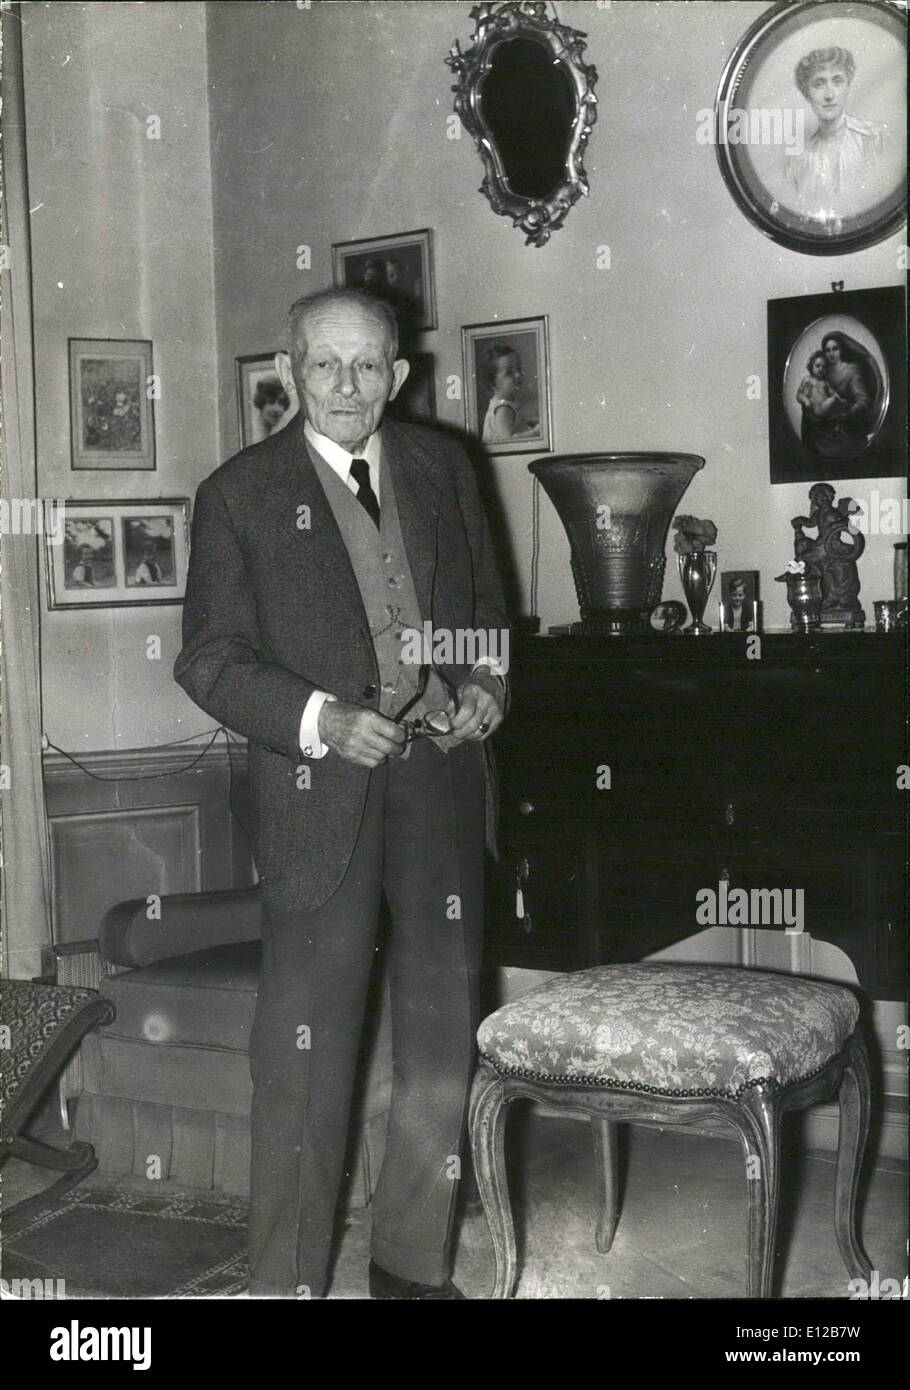 Dec. 09, 2011 - Ex-Servicemen to Commemorate General Weygand. On the occasion of the centenary of the birth of General Weygand who died two years ago, Commemoration ceremonies will be held by ex-servicemen. OPS: General Weygand pictured at his Paris home shortly before his death. Jan. 20/67 - Stock Image